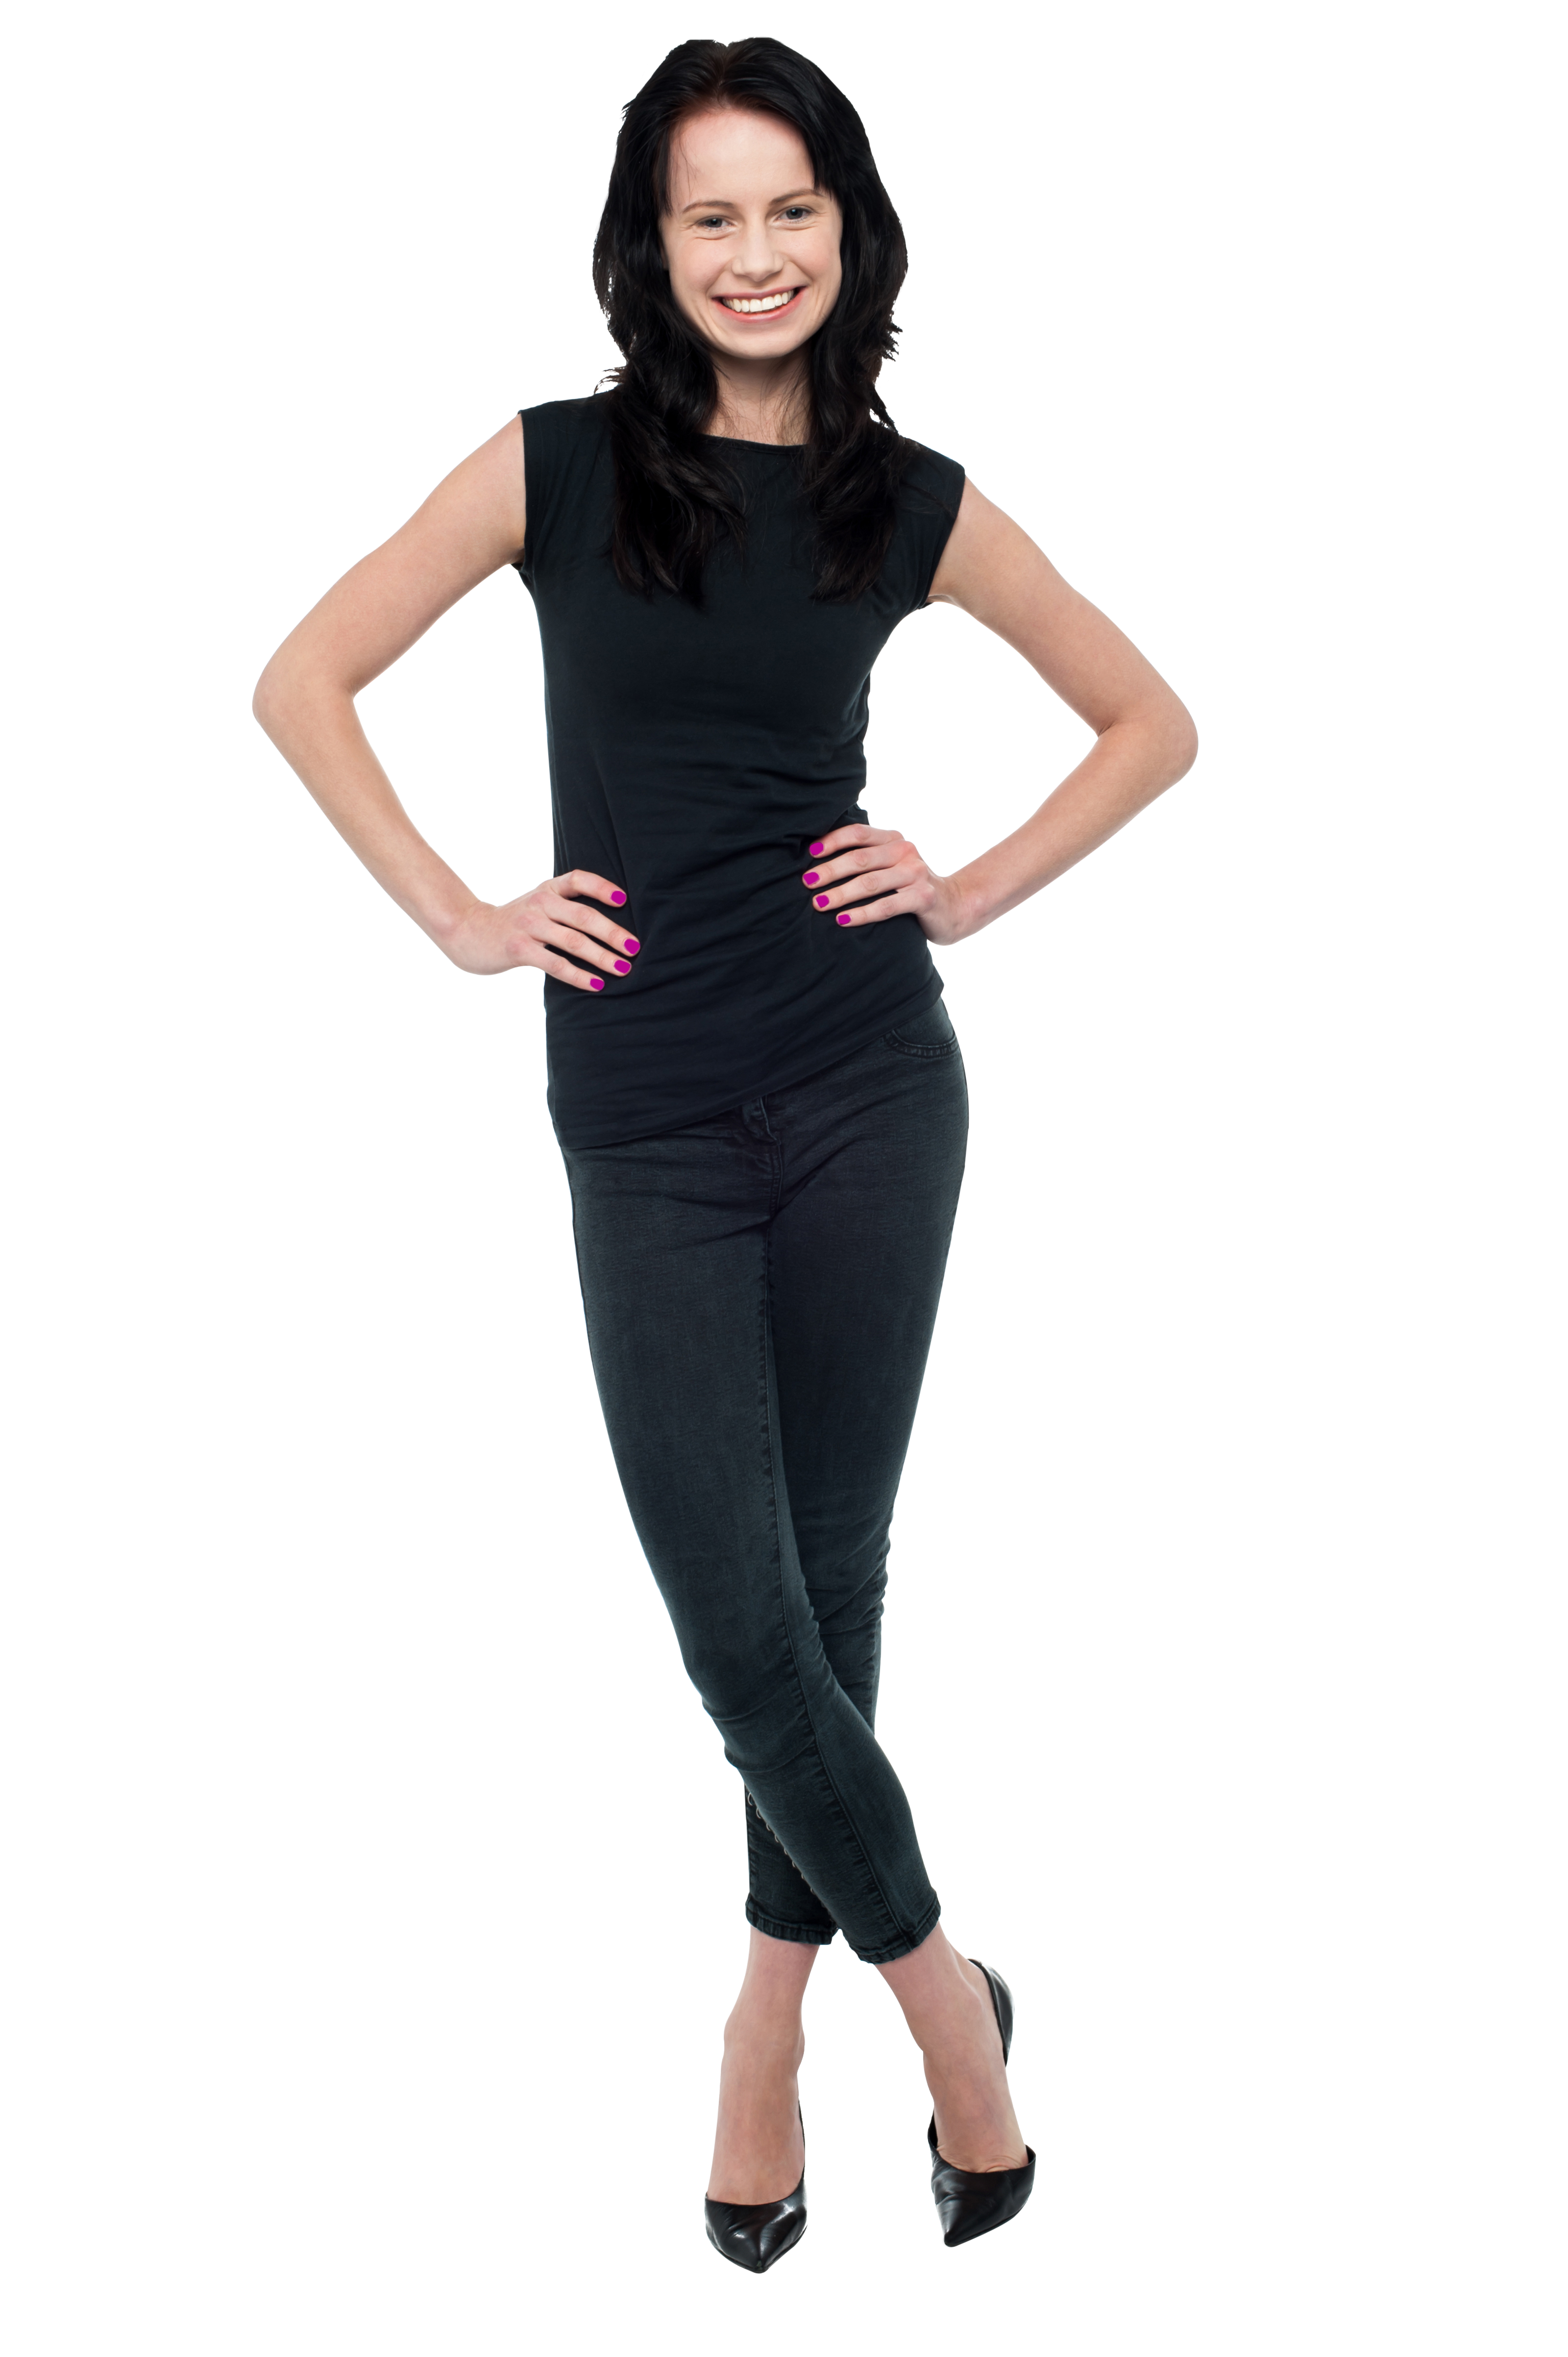 Standing Girl PNG Image PurePNG Free Transparent CC0